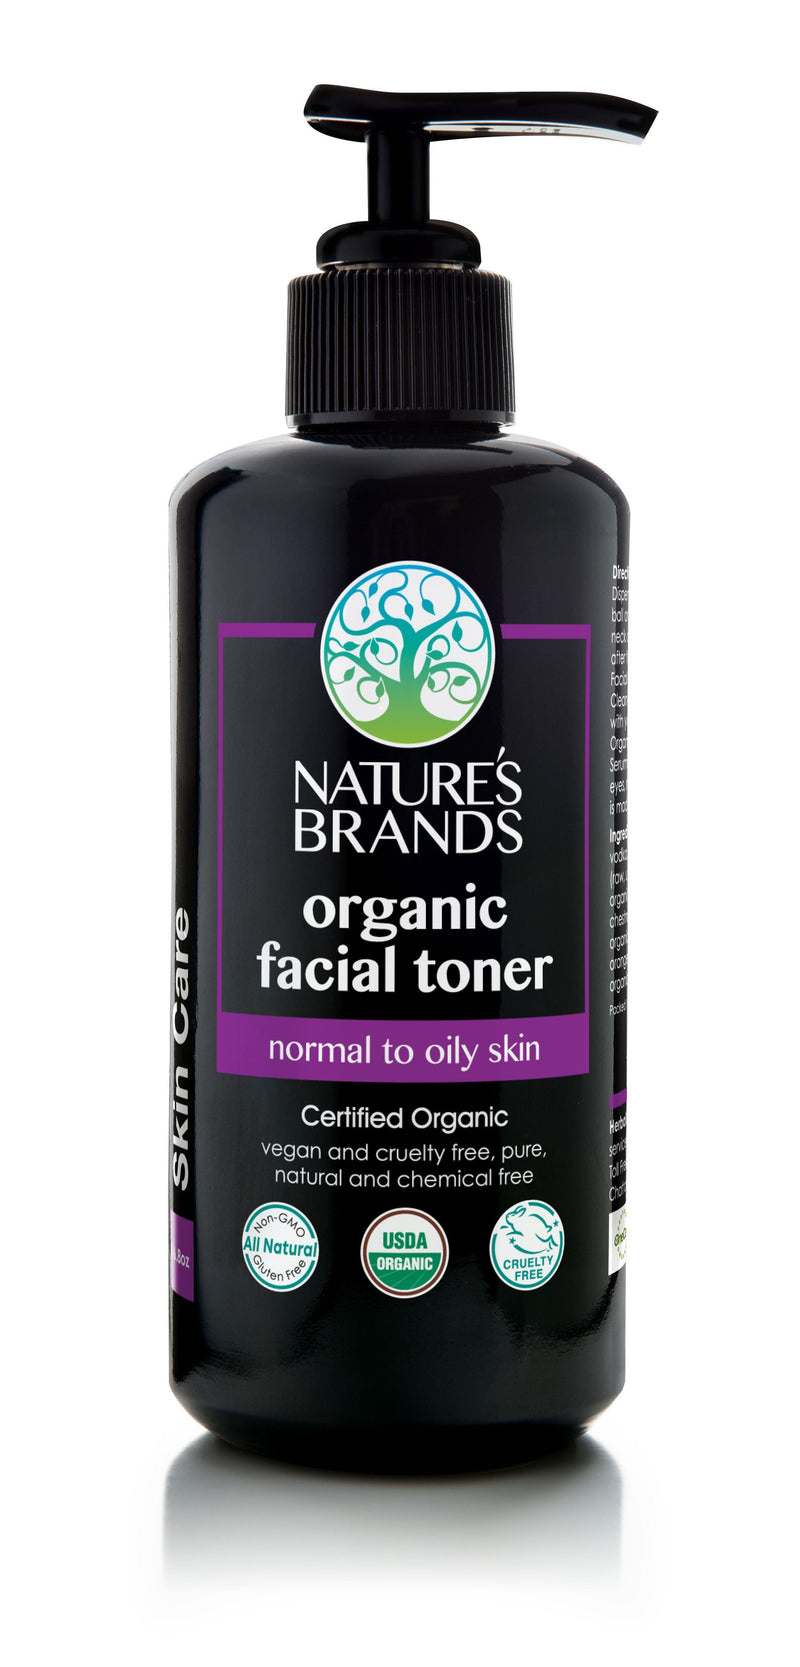 Herbal Choice Mari Organic Facial Toner,Normal to oily Skin - Herbal Choice Mari Organic Facial Toner,Normal to oily Skin - Herbal Choice Mari Organic Facial Toner,Normal to oily Skin